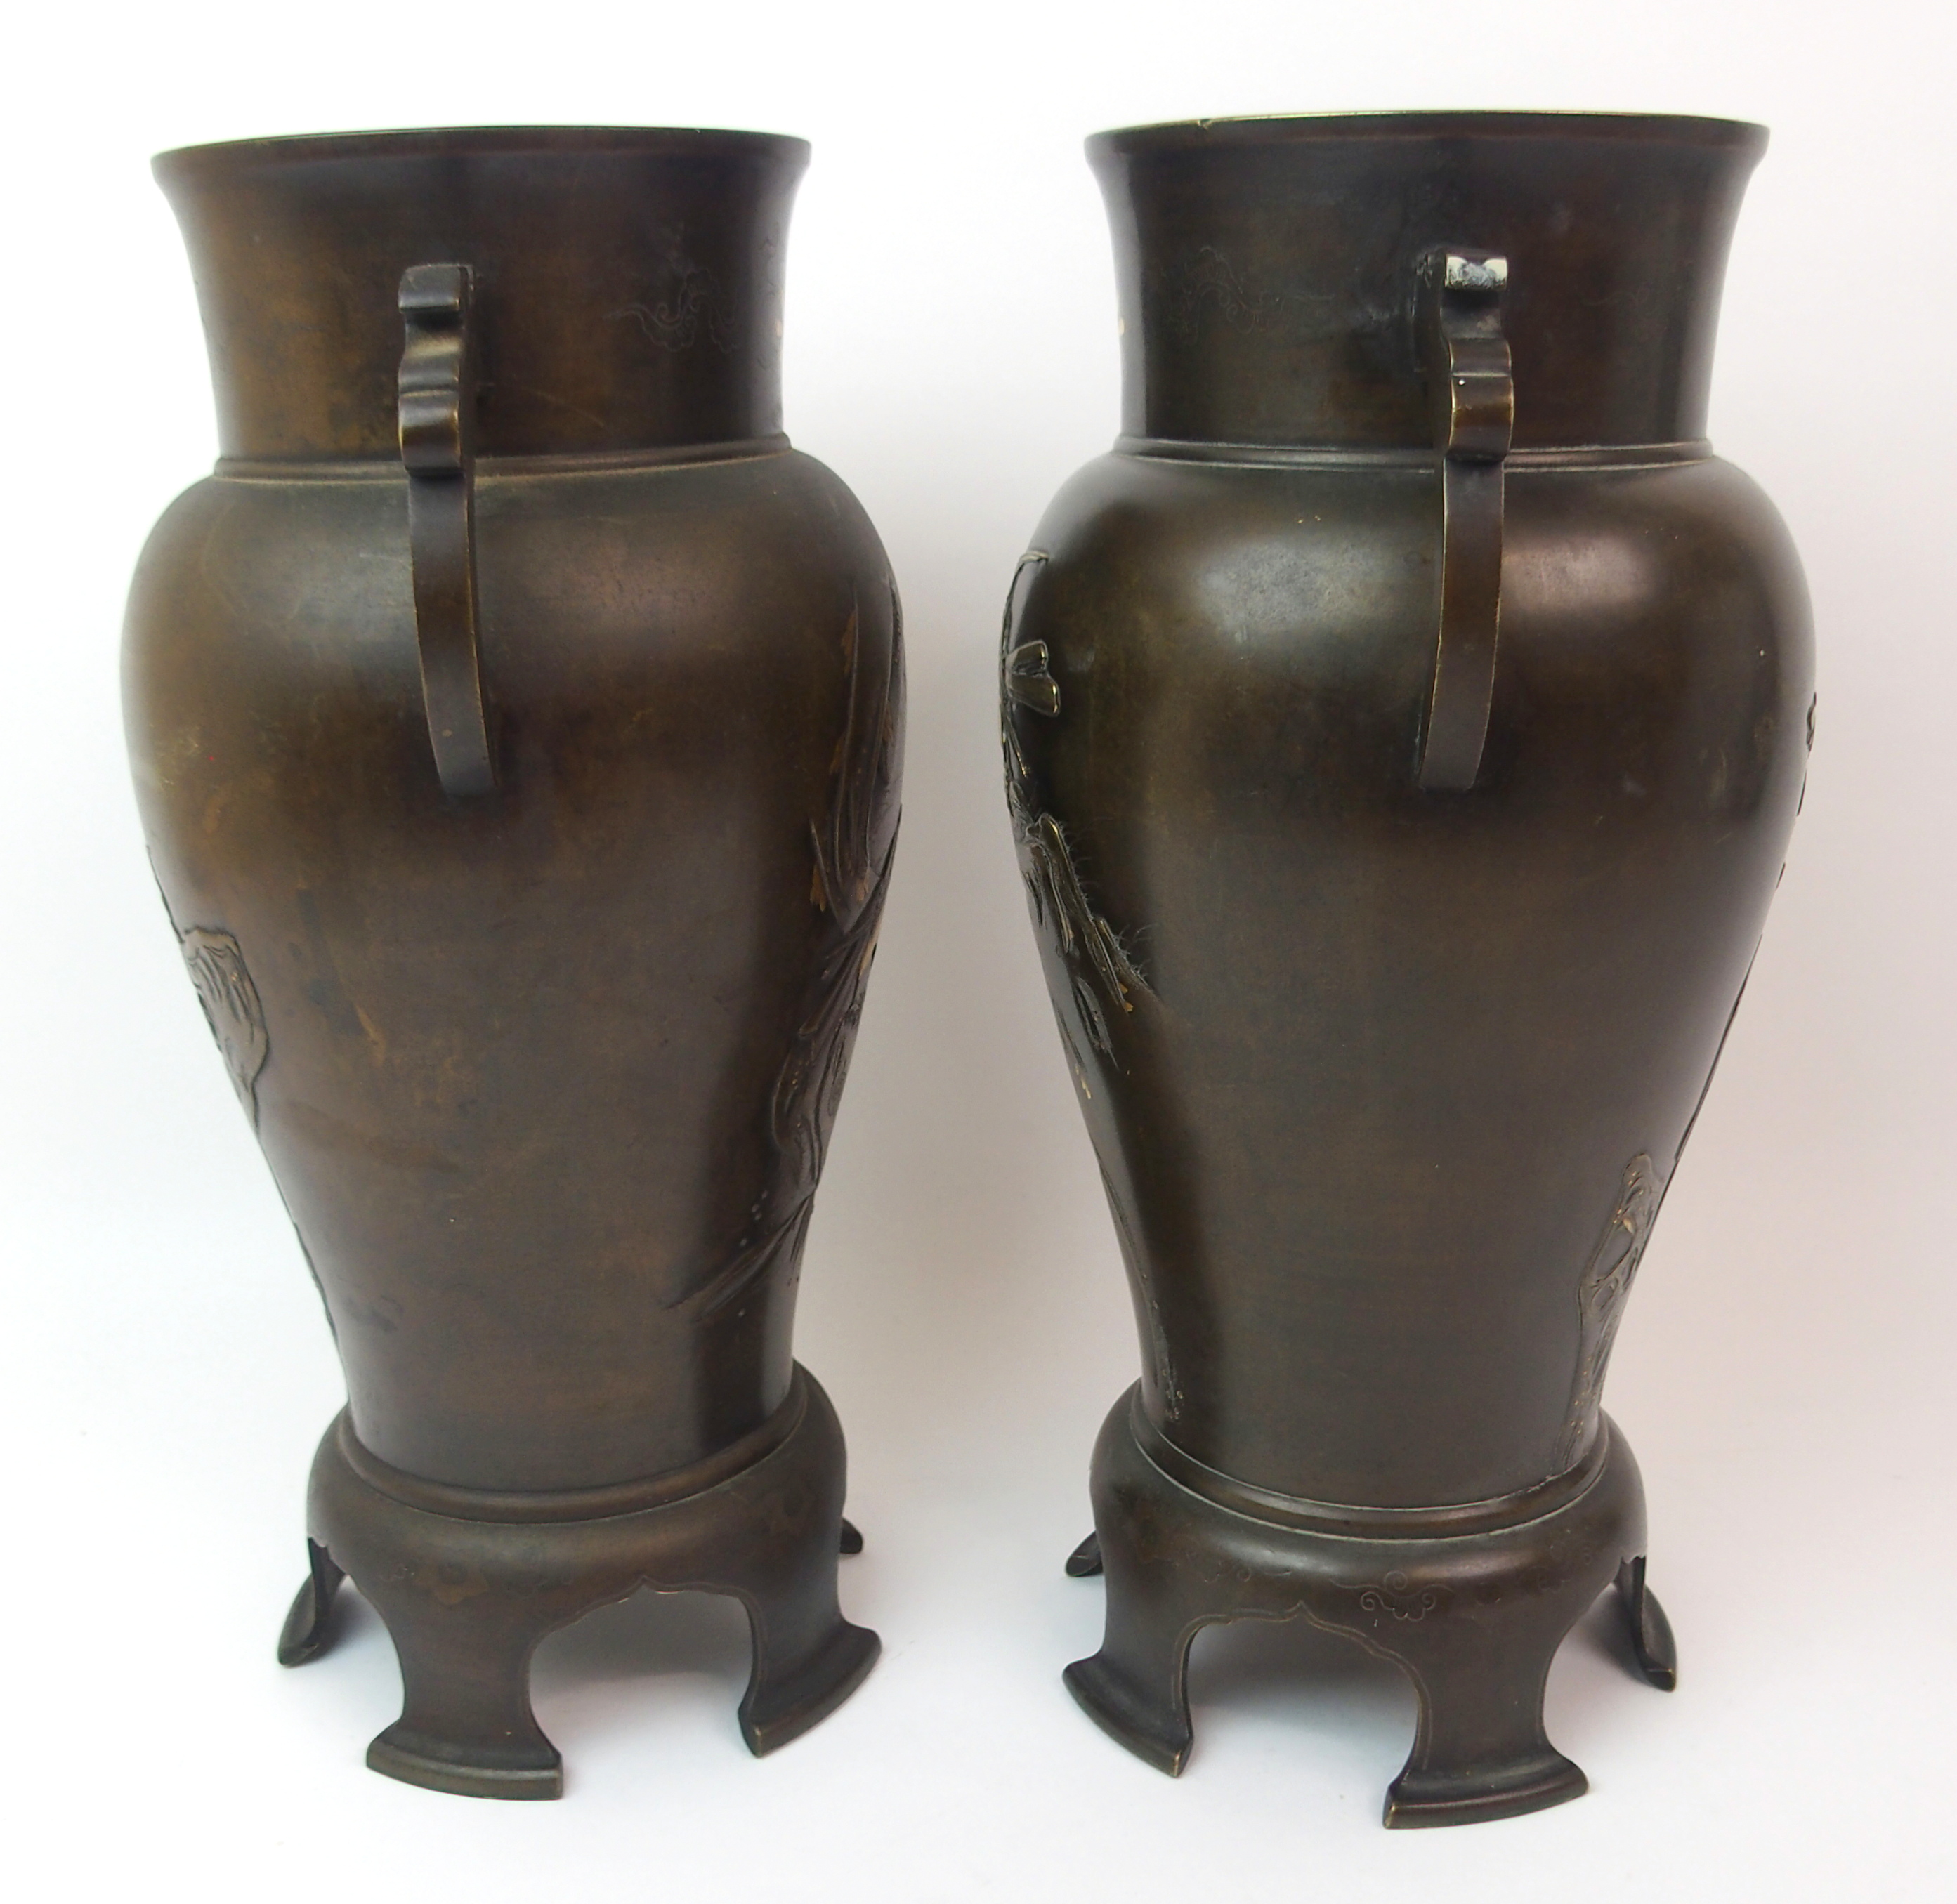 Lot 31 - A PAIR OF JAPANESE BRONZE TWO-HANDLED BALUSTER VASES decorated with peonies issuing from rockwork